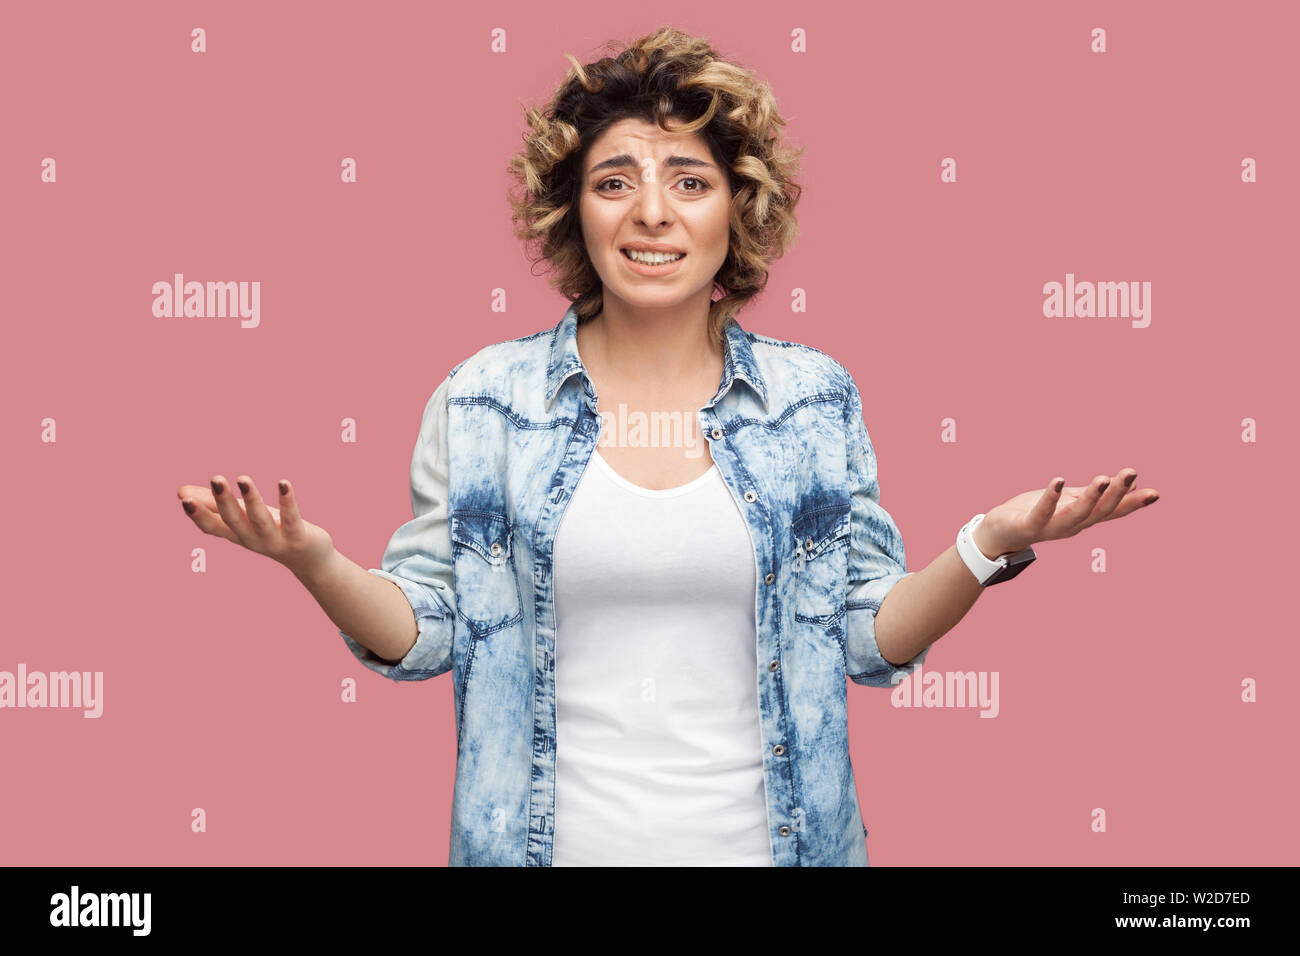 What? Portrait of confused or shocked young woman with curly hairstyle in casual blue shirt standing with raised arms and looking at camera worried. i Stock Photo